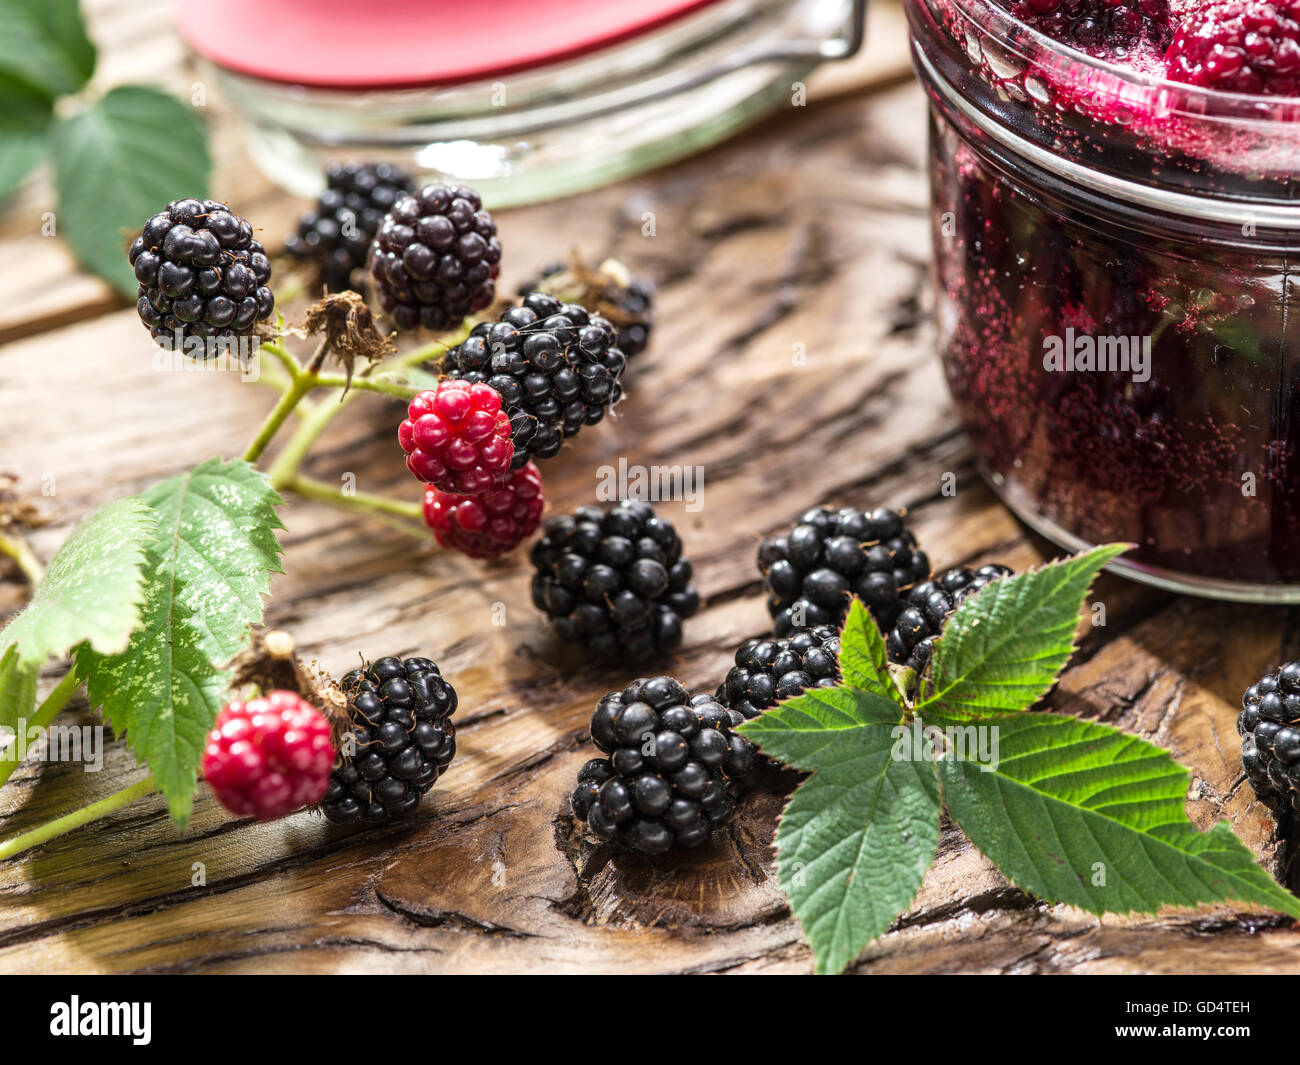 Blackberry confiture on old wooden table. Several fresh berries are near it. - Stock Image